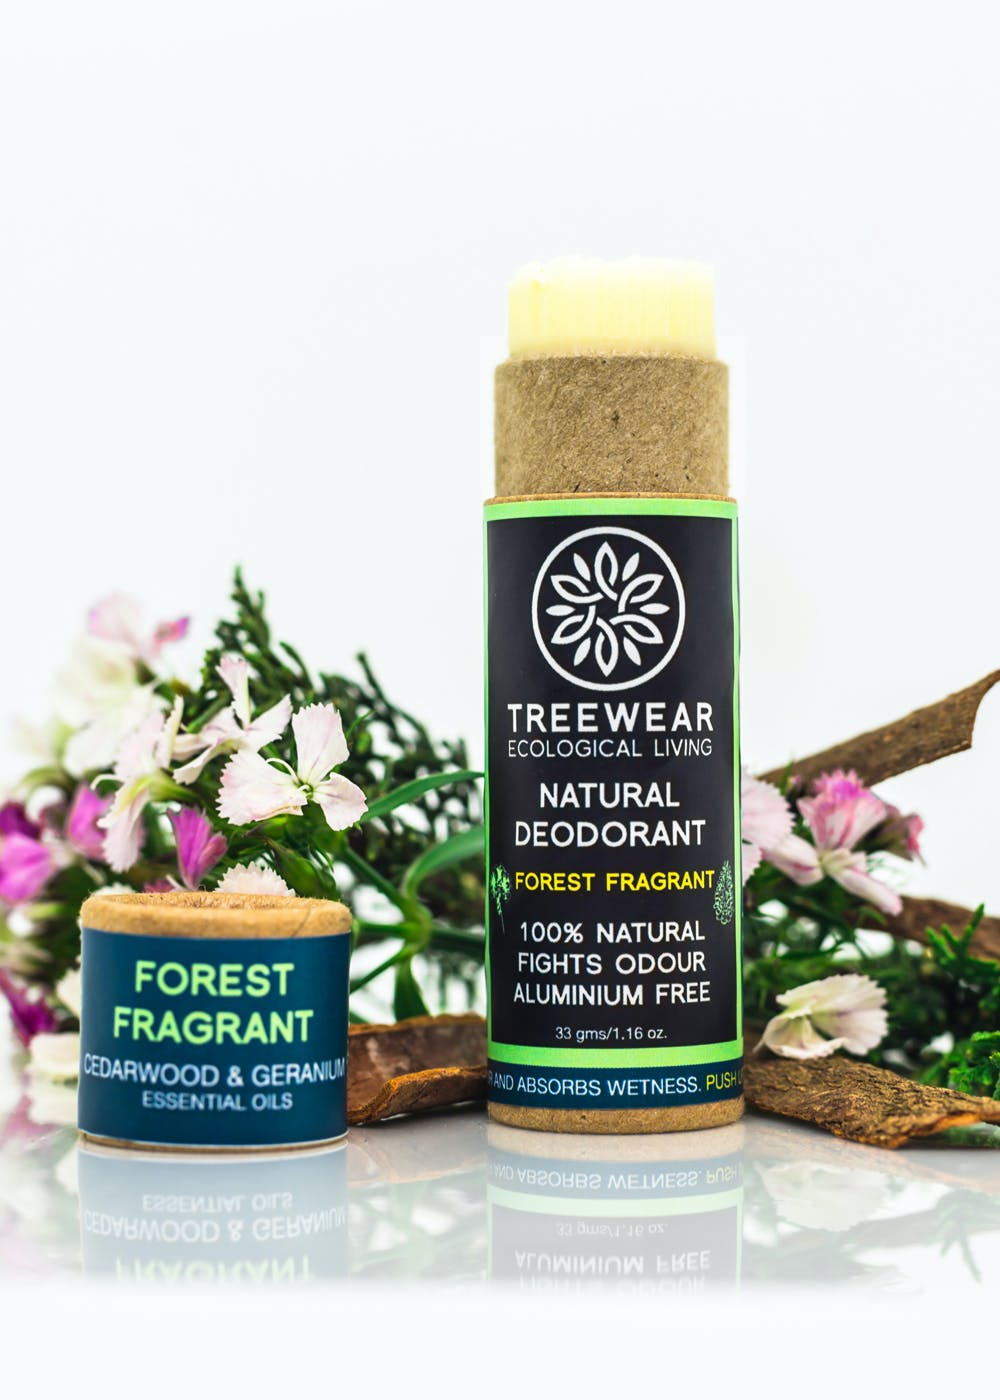 Forest Fragrant Natural Deodorant